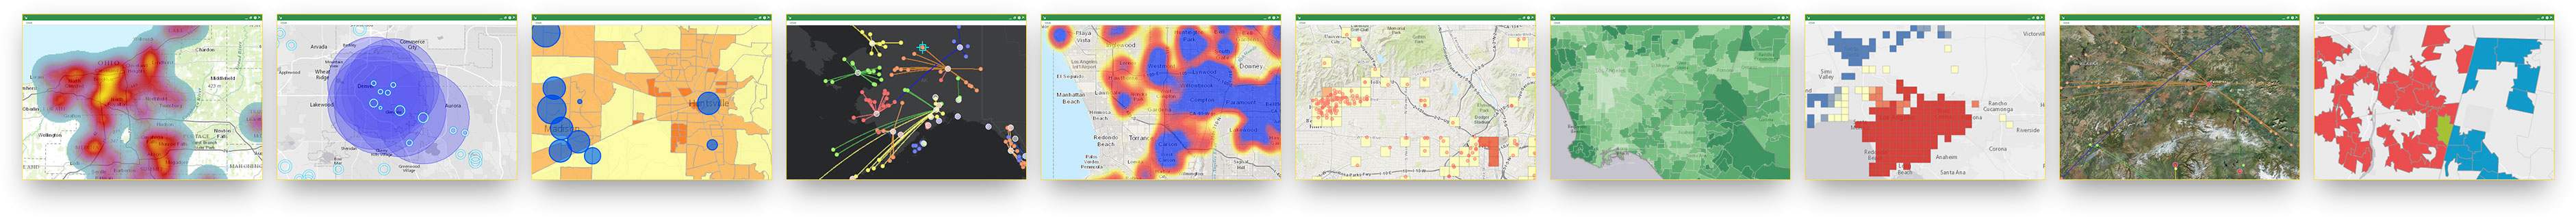 Arcgis maps for office but you can add a new perspective when you analyze your data on a map inside excel extract maximum value by analyzing your data from all angles gumiabroncs Image collections